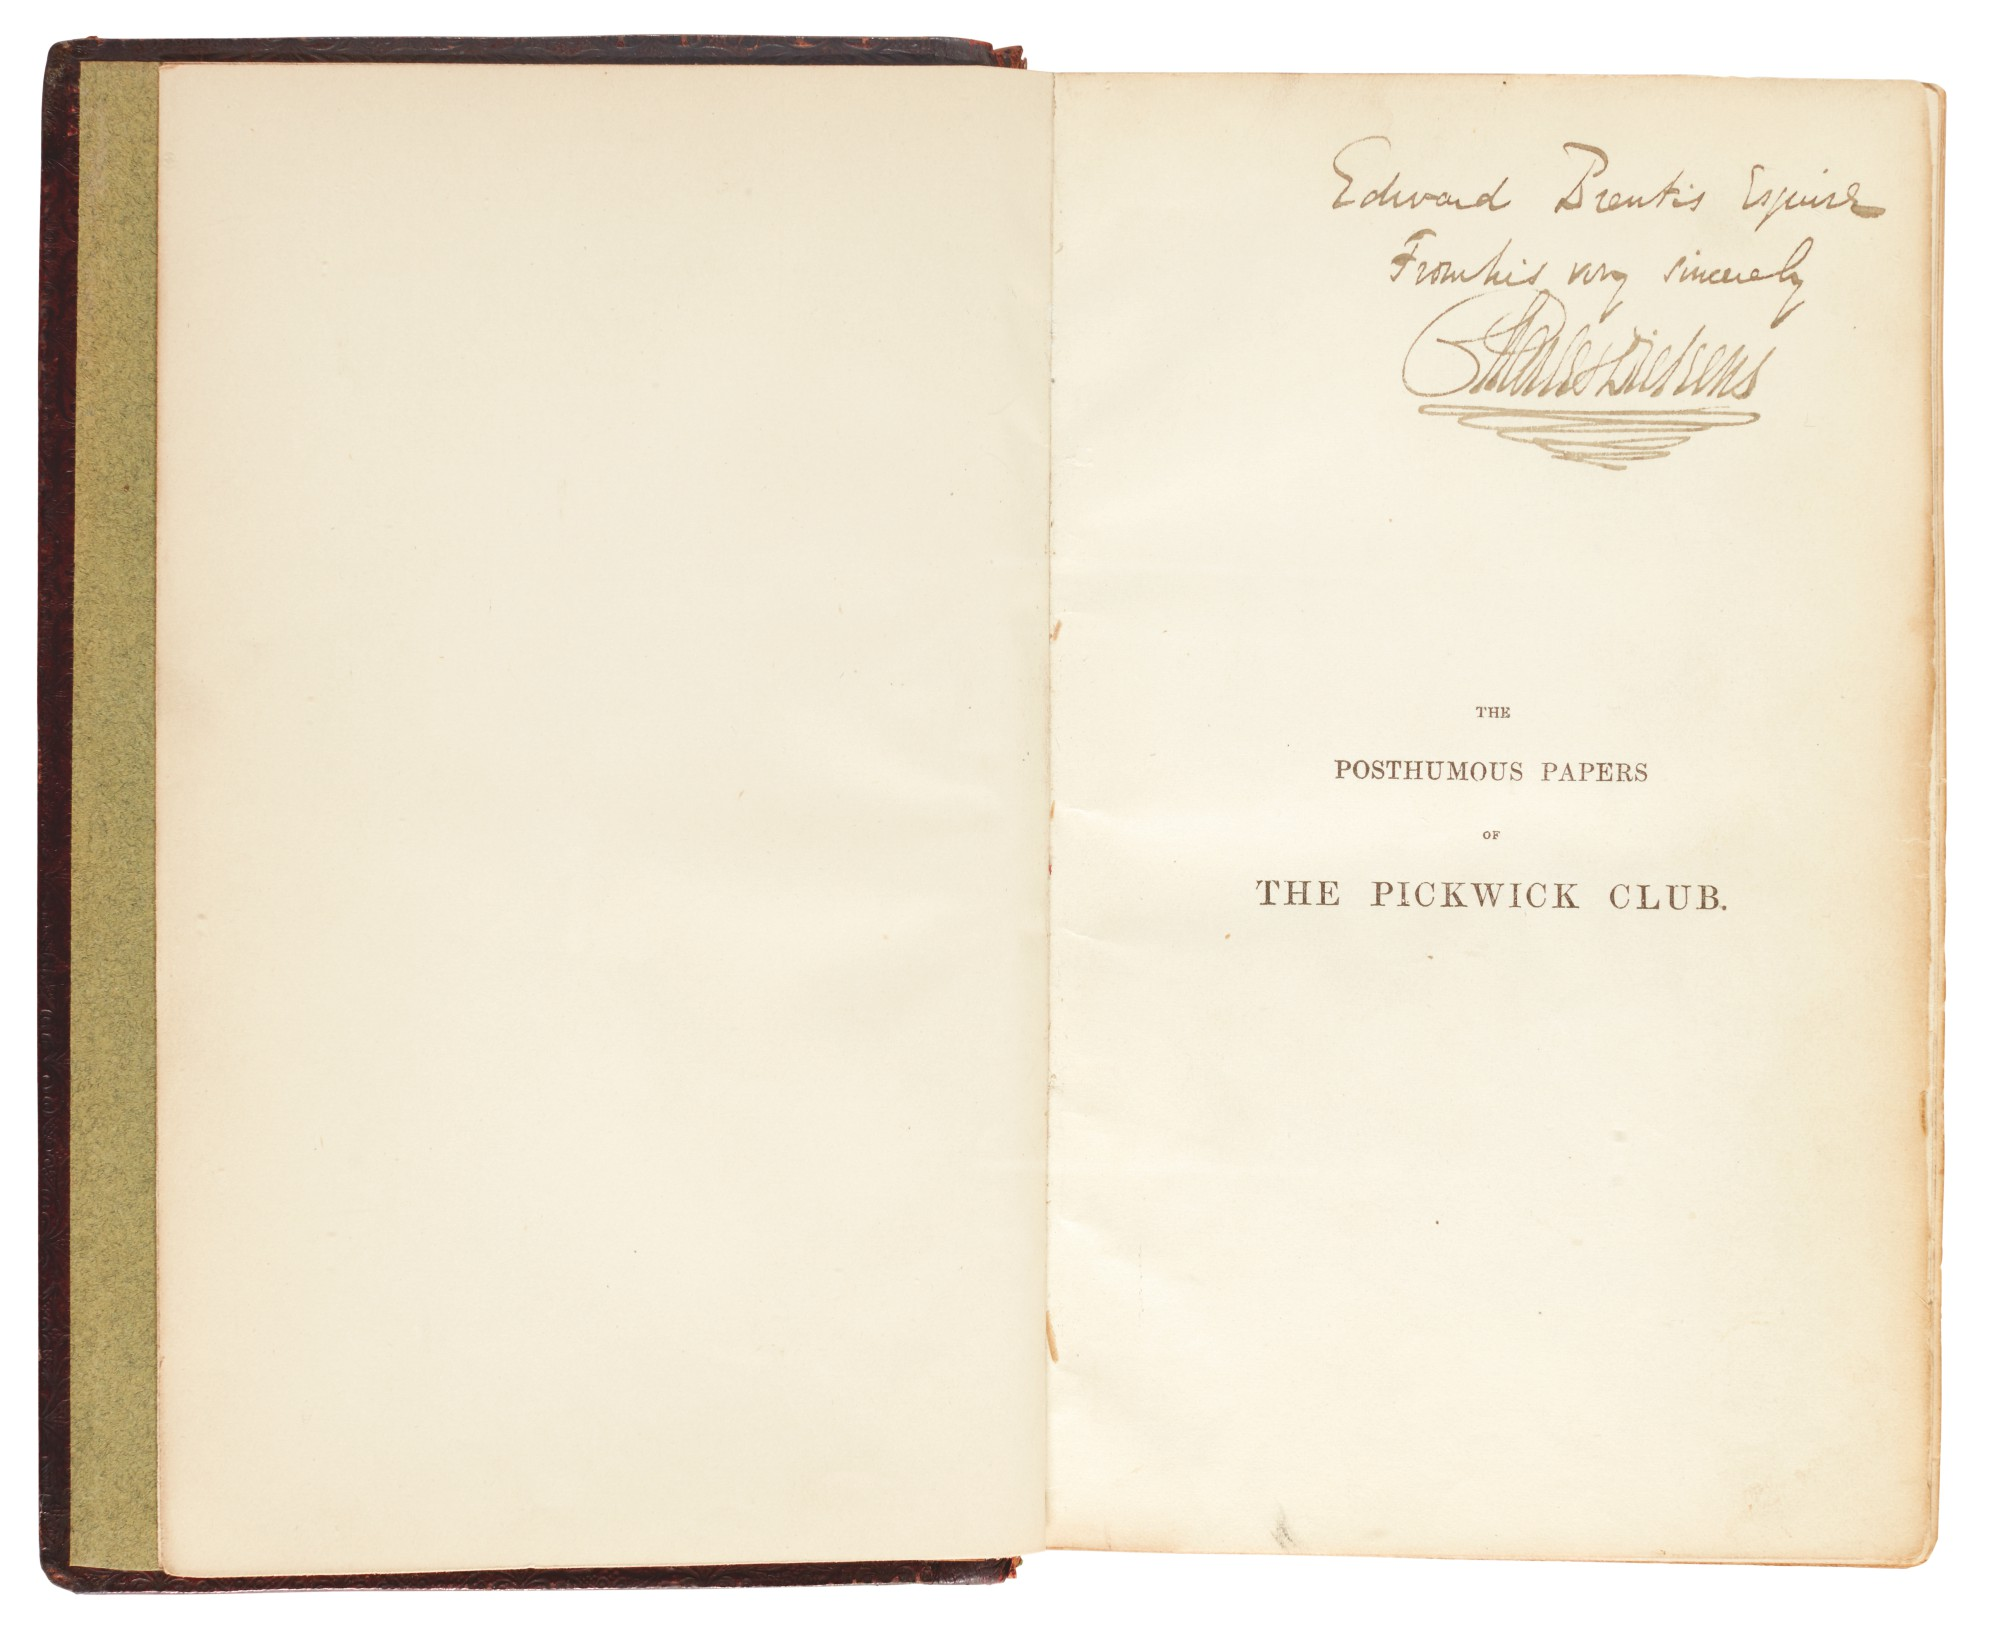 Dickens, The Posthumous Papers of the Pickwick Club, 1837, first book edition, presentation copy inscribed to Prentis